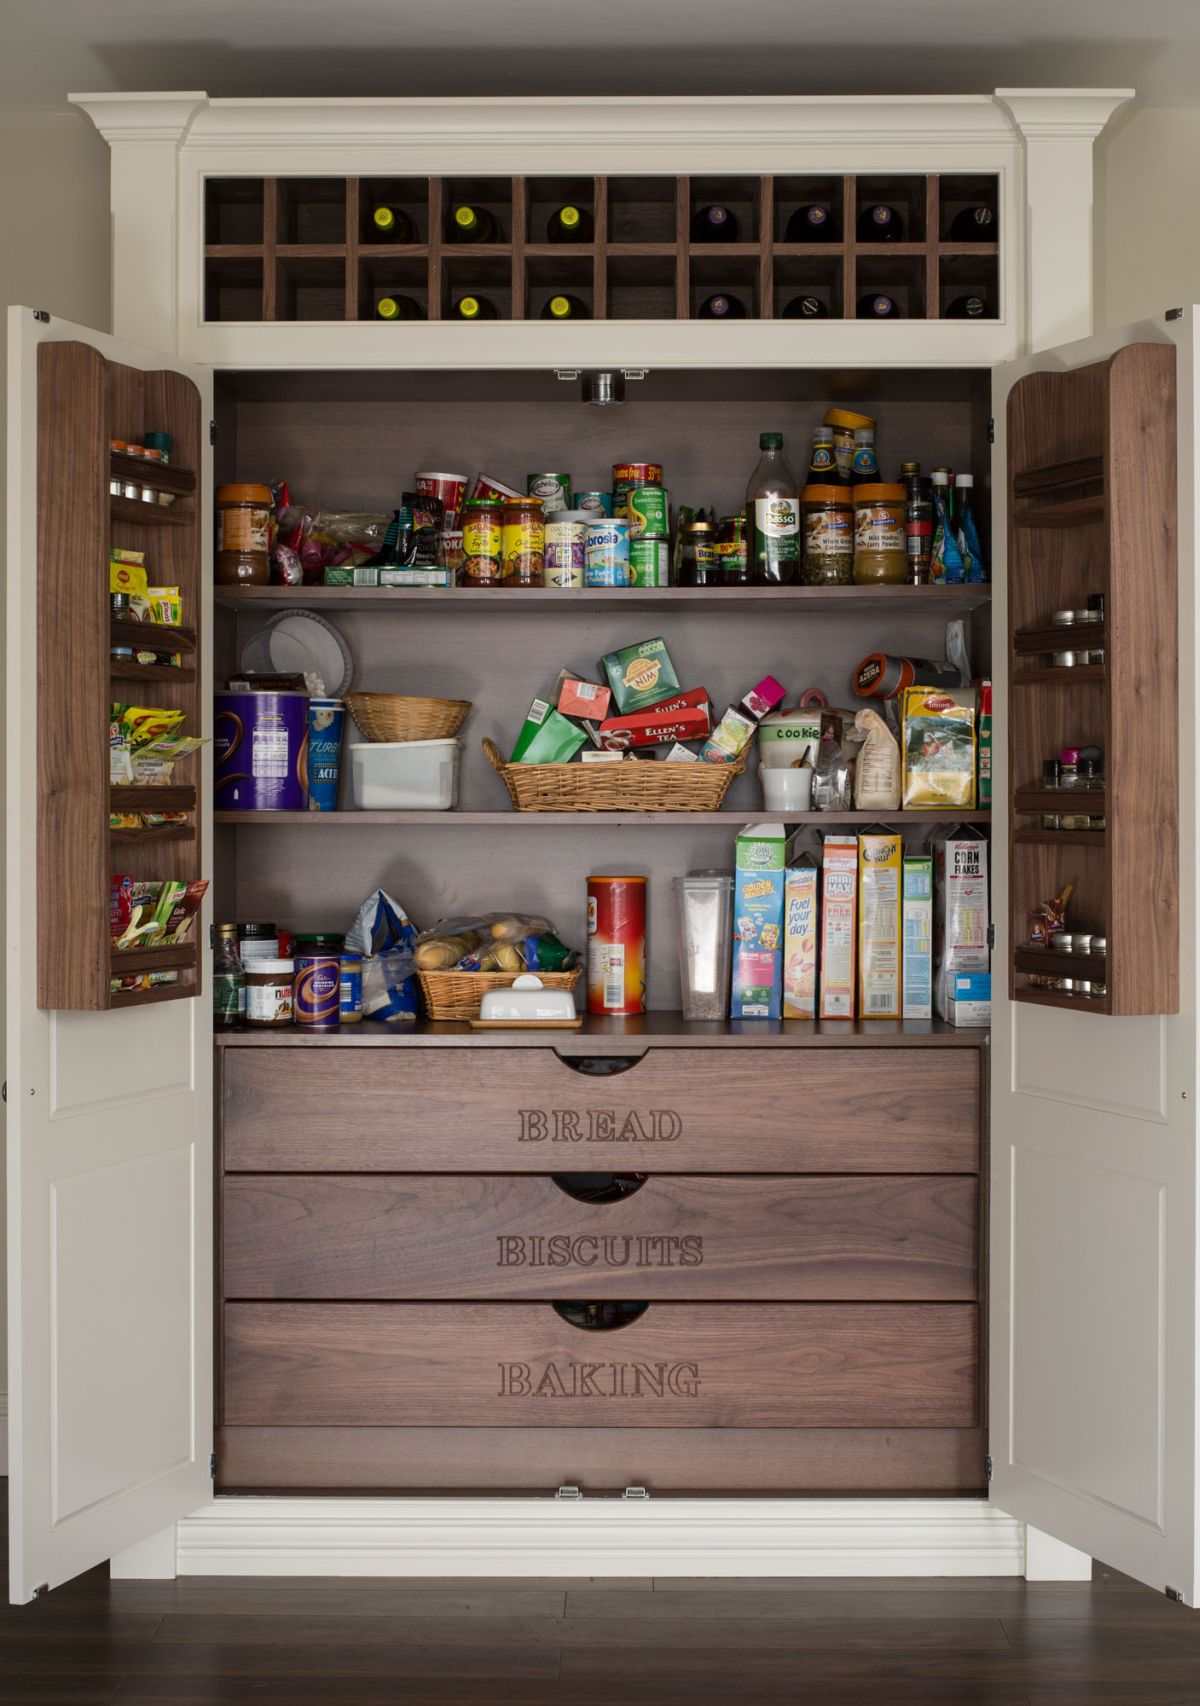 pantry concepts butlers and pantries pantrys storage hutches gallery cabinetry created wine